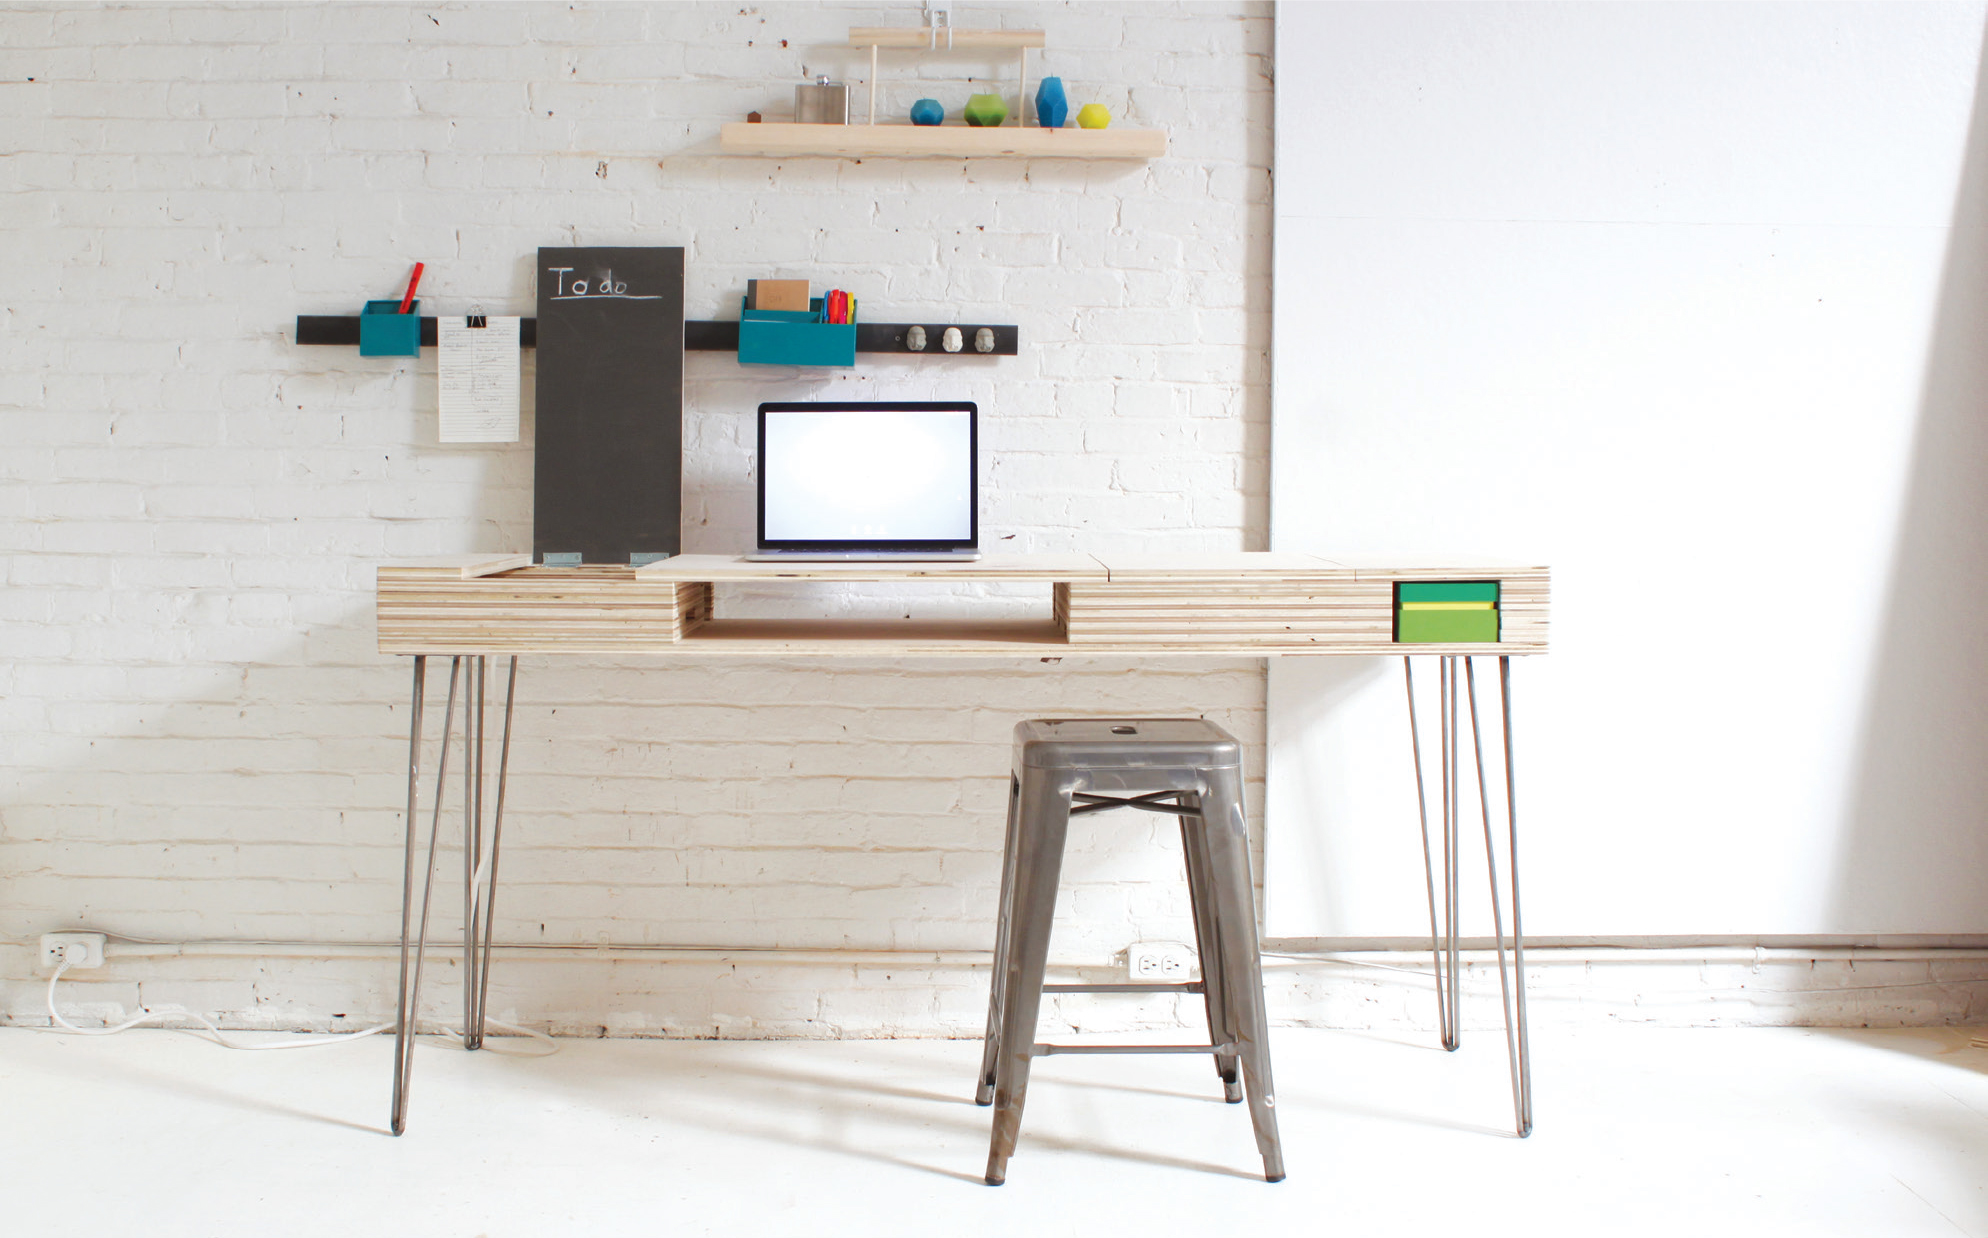 Stylish Desk build a stylish, modern desk with flip-up storage | make: